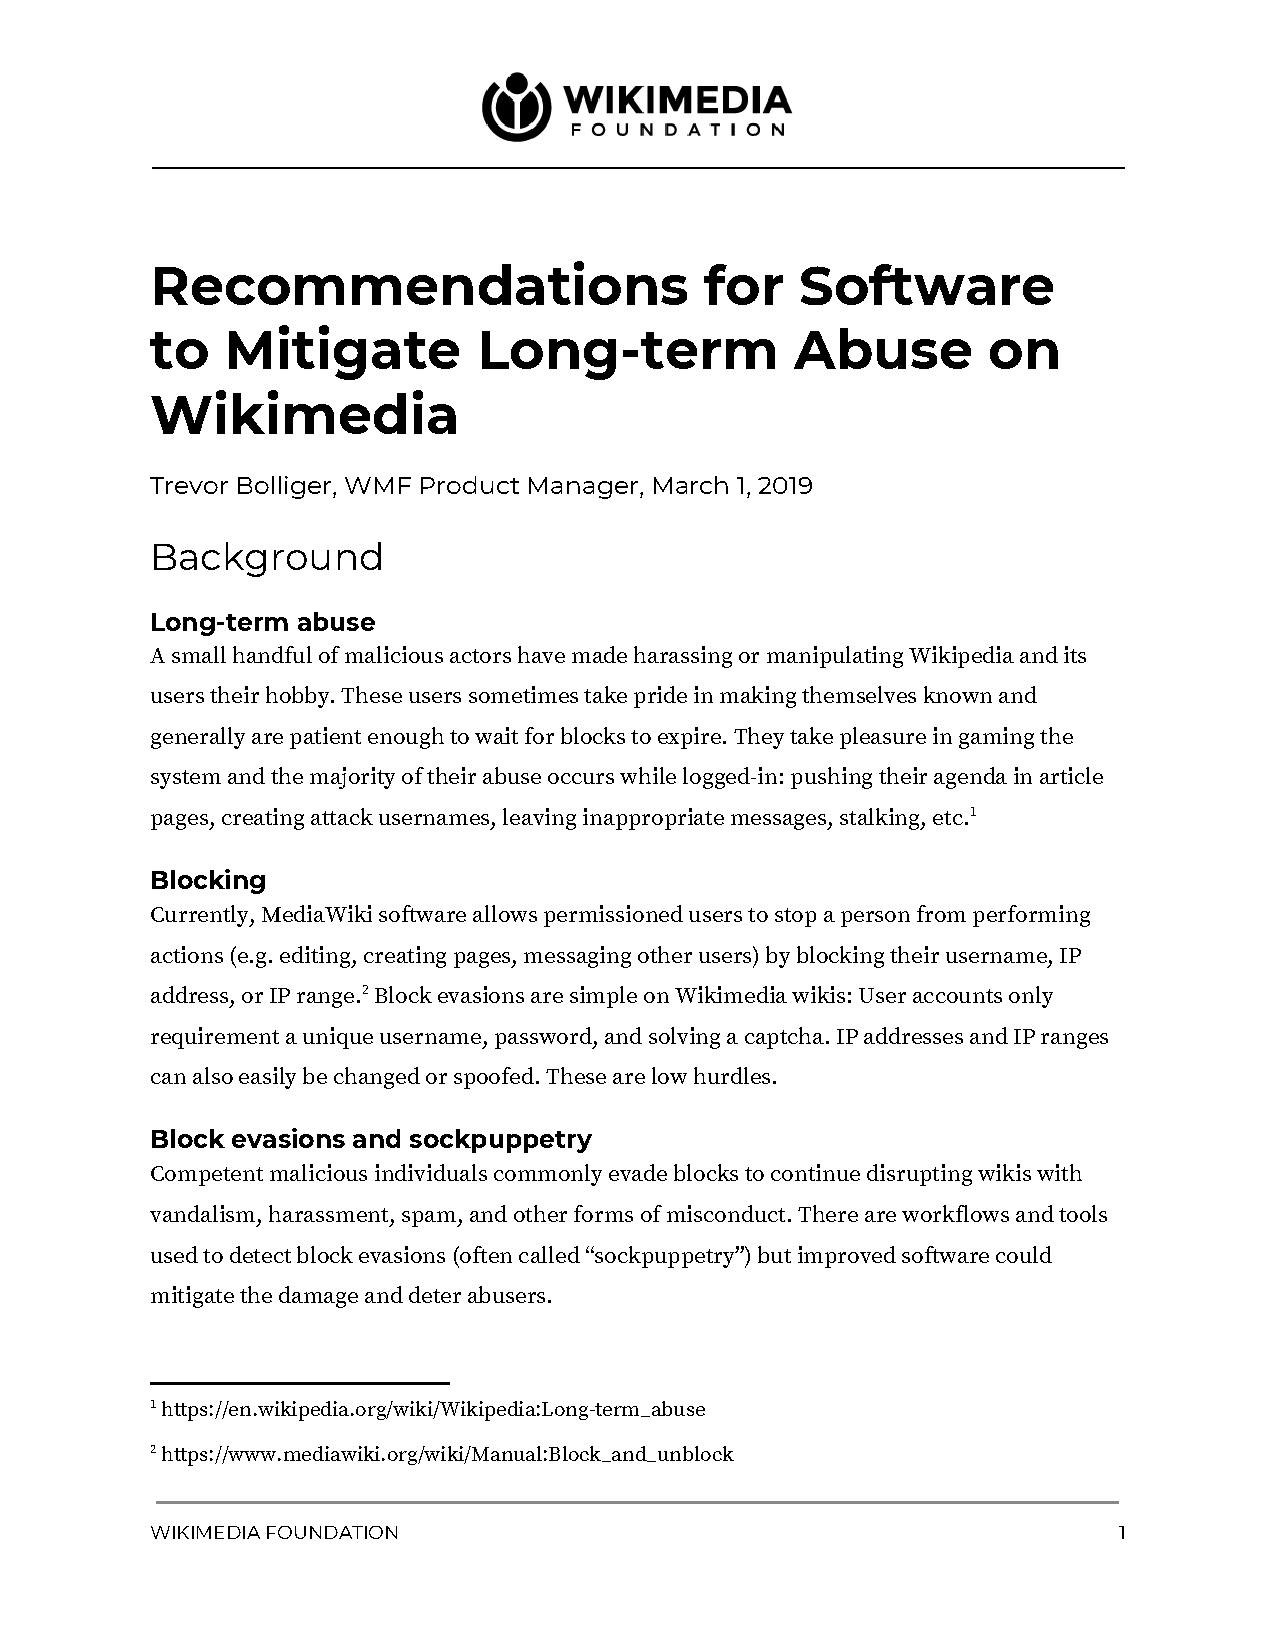 File:Recommendations for Software to Mitigate Long-term